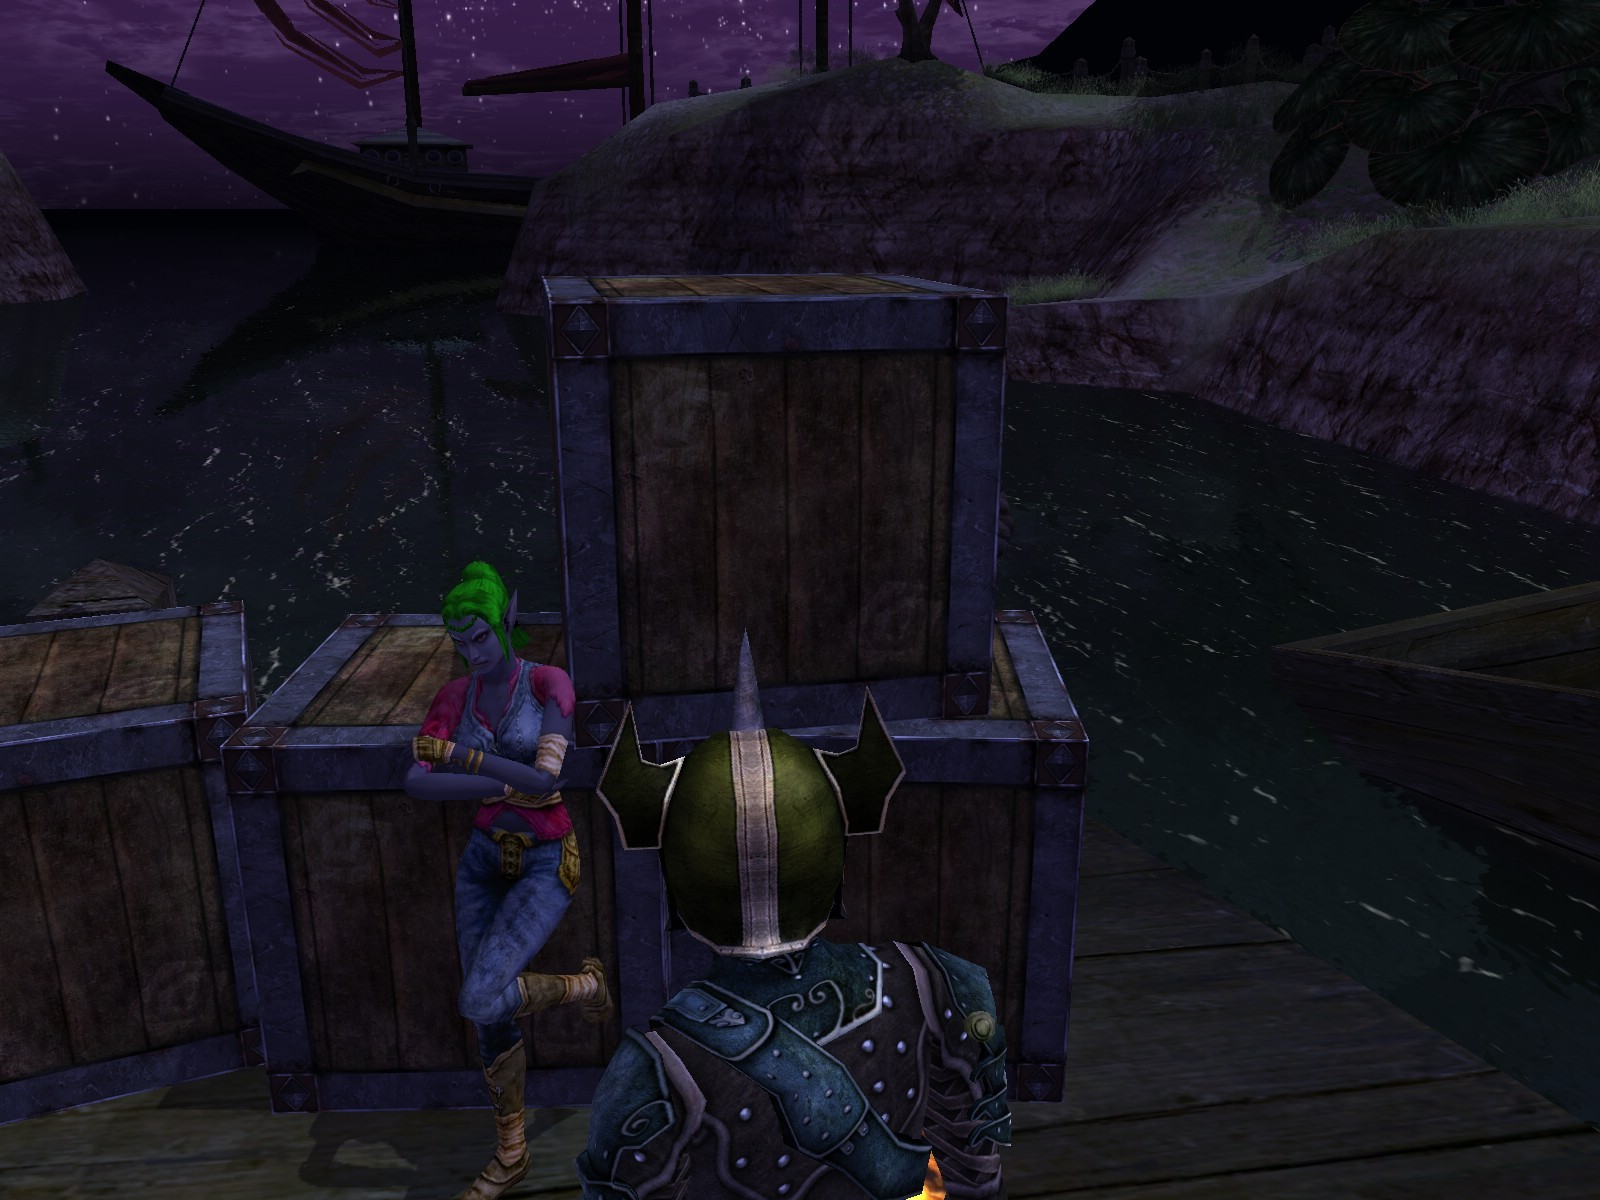 Dungeons & Dragons Online - DDO: Let's talk to that cutie... So, you gathered 400 favor and now playing drow, eh? I'd like some favor too, you know...